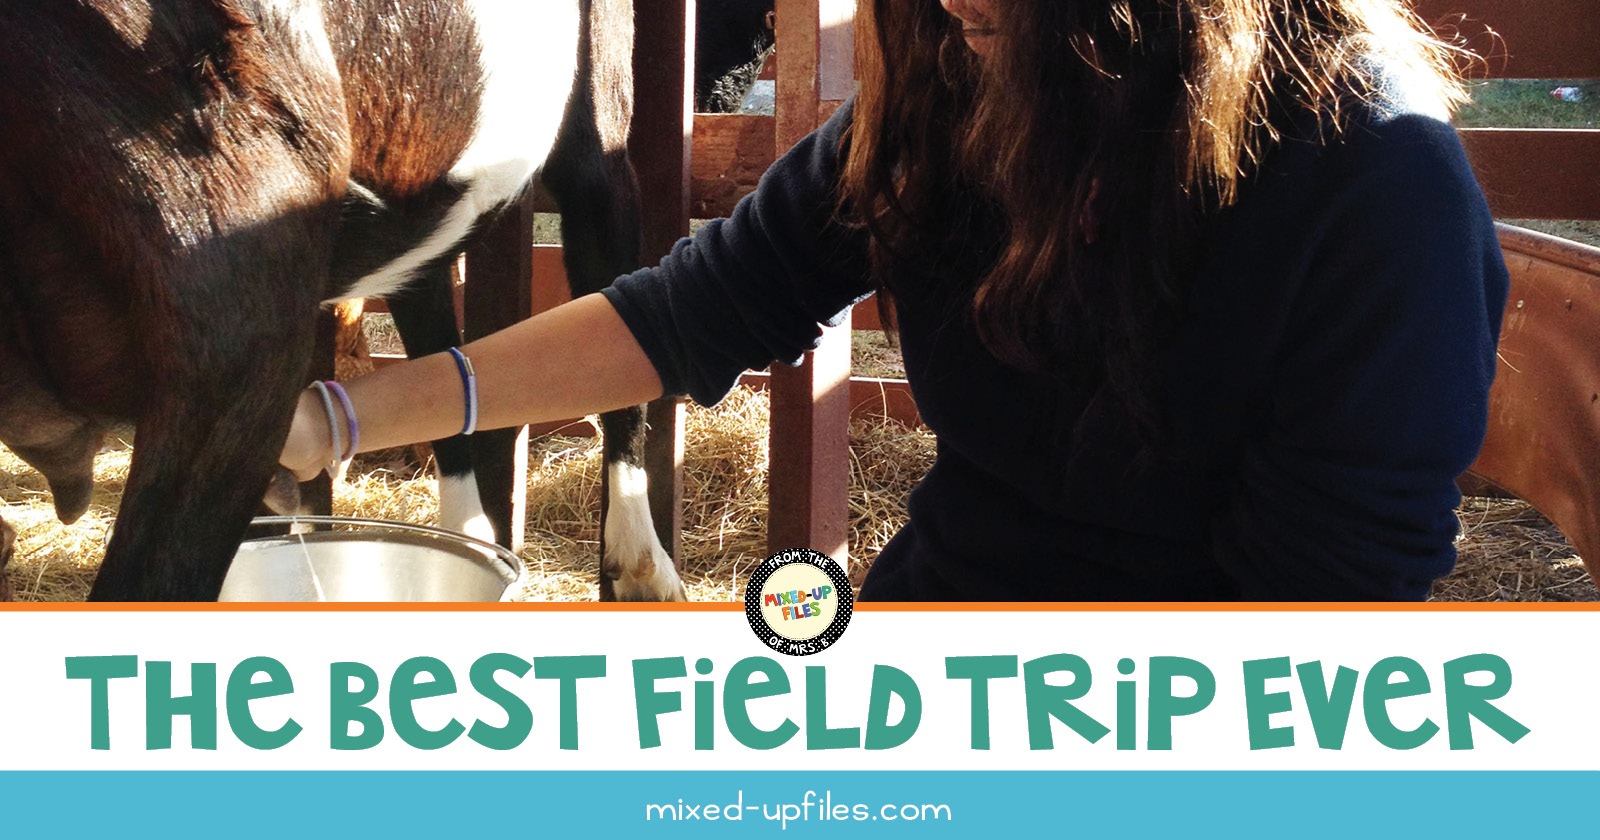 Our best field trip ever - blog post by mixed-upfiles.com